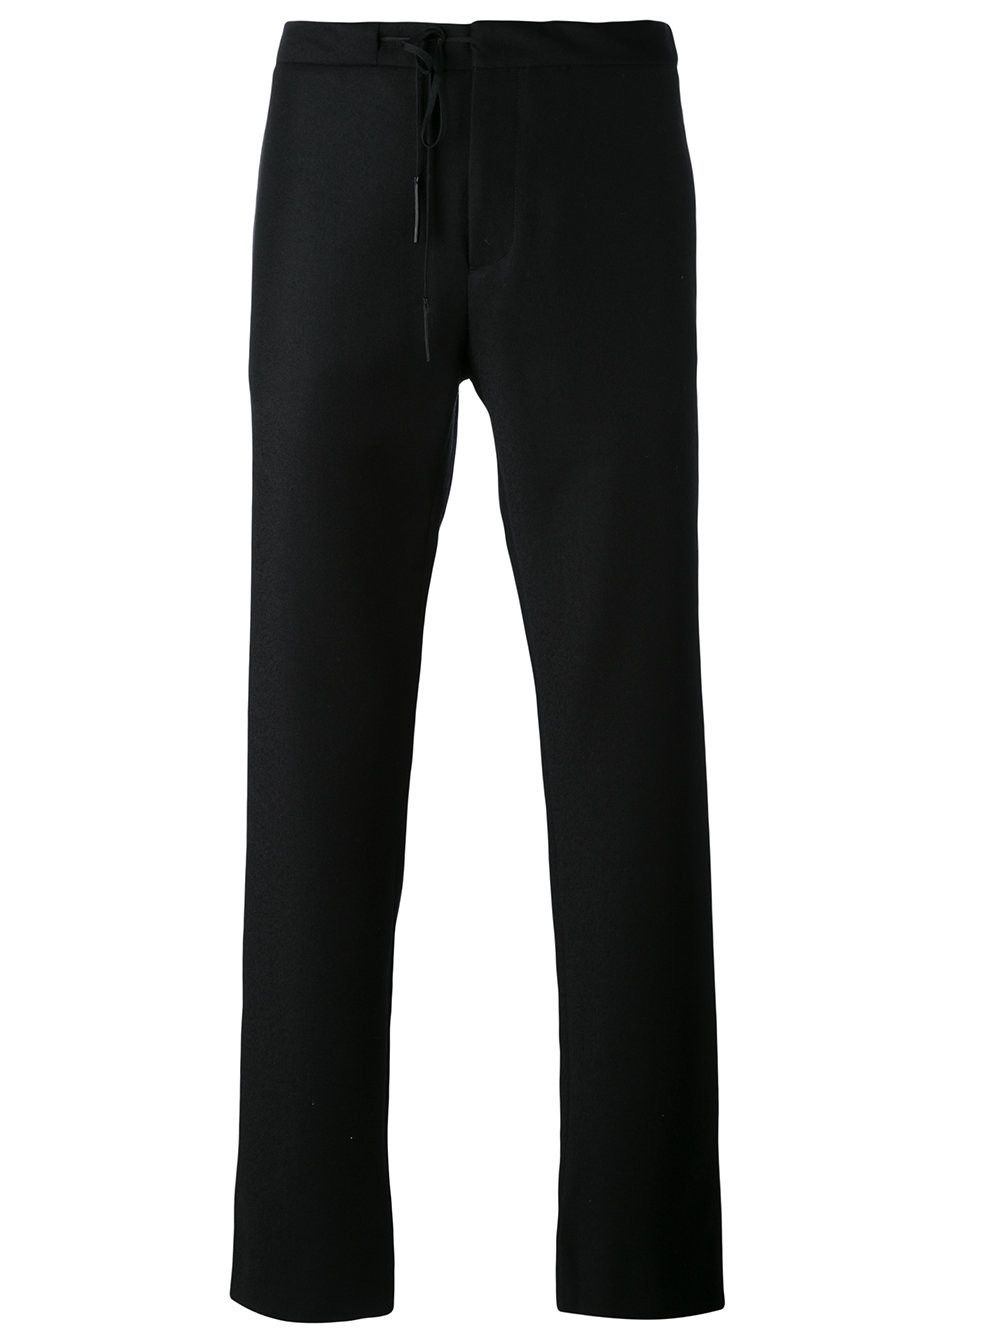 drawstring tailored trousers - Black Maison Martin Margiela Factory Outlet Online Pay With Paypal Cheap Price Websites Online Clearance Huge Surprise 1mYyj2gS